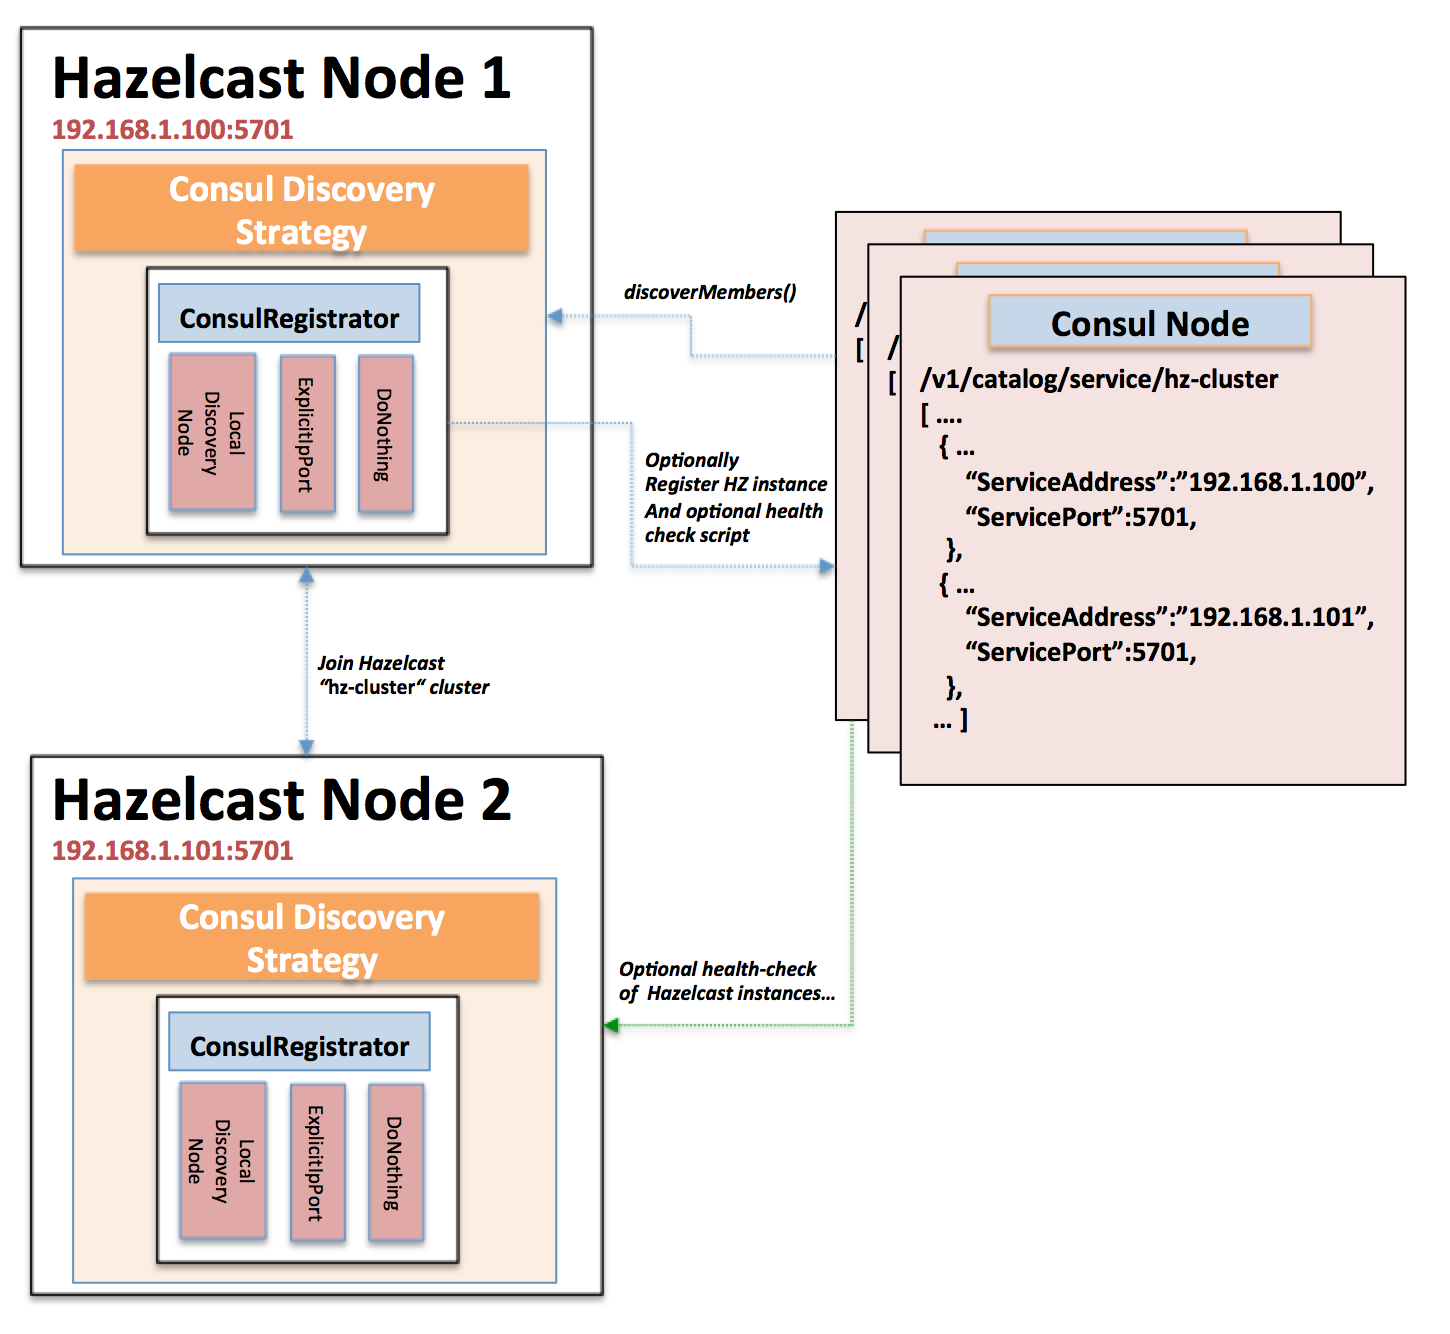 Diagram of hazelcast consul discovery strategy